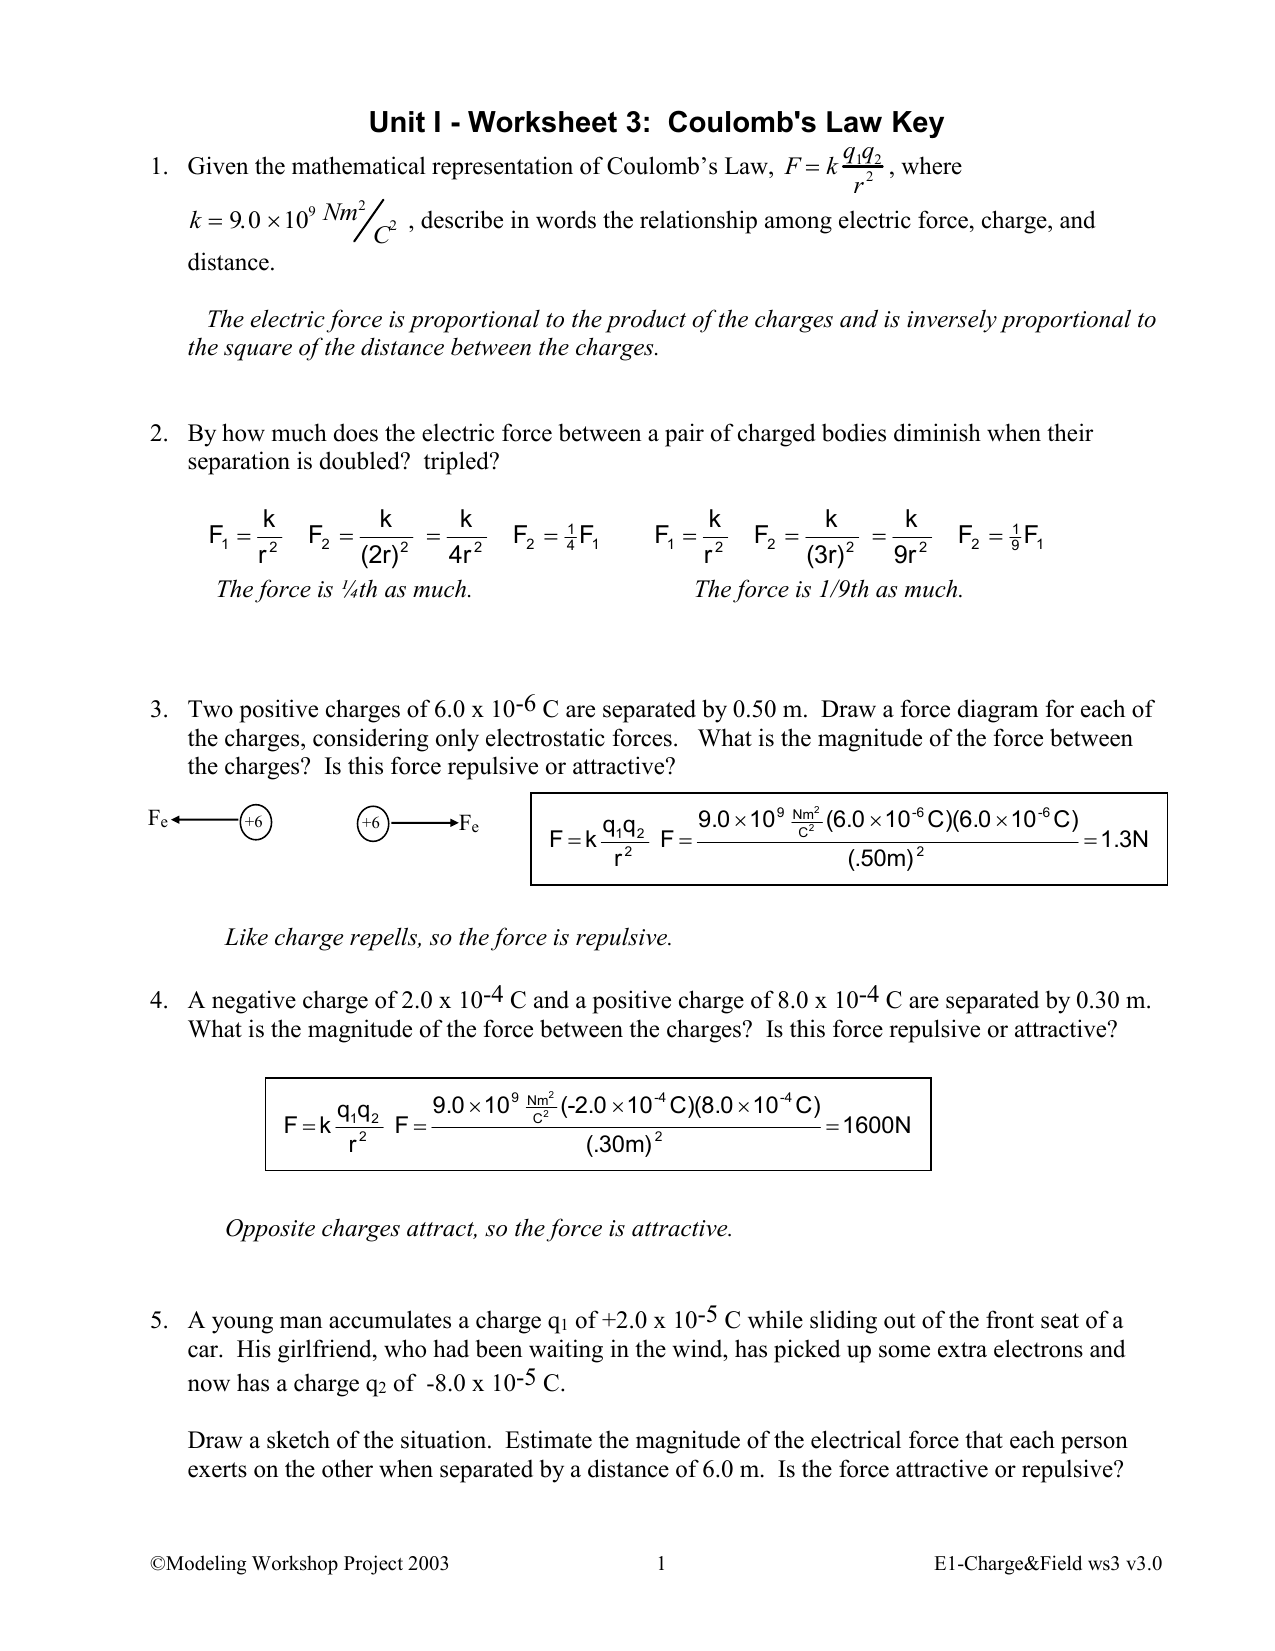 Coulombs-Law-Worksheet-Answers-1